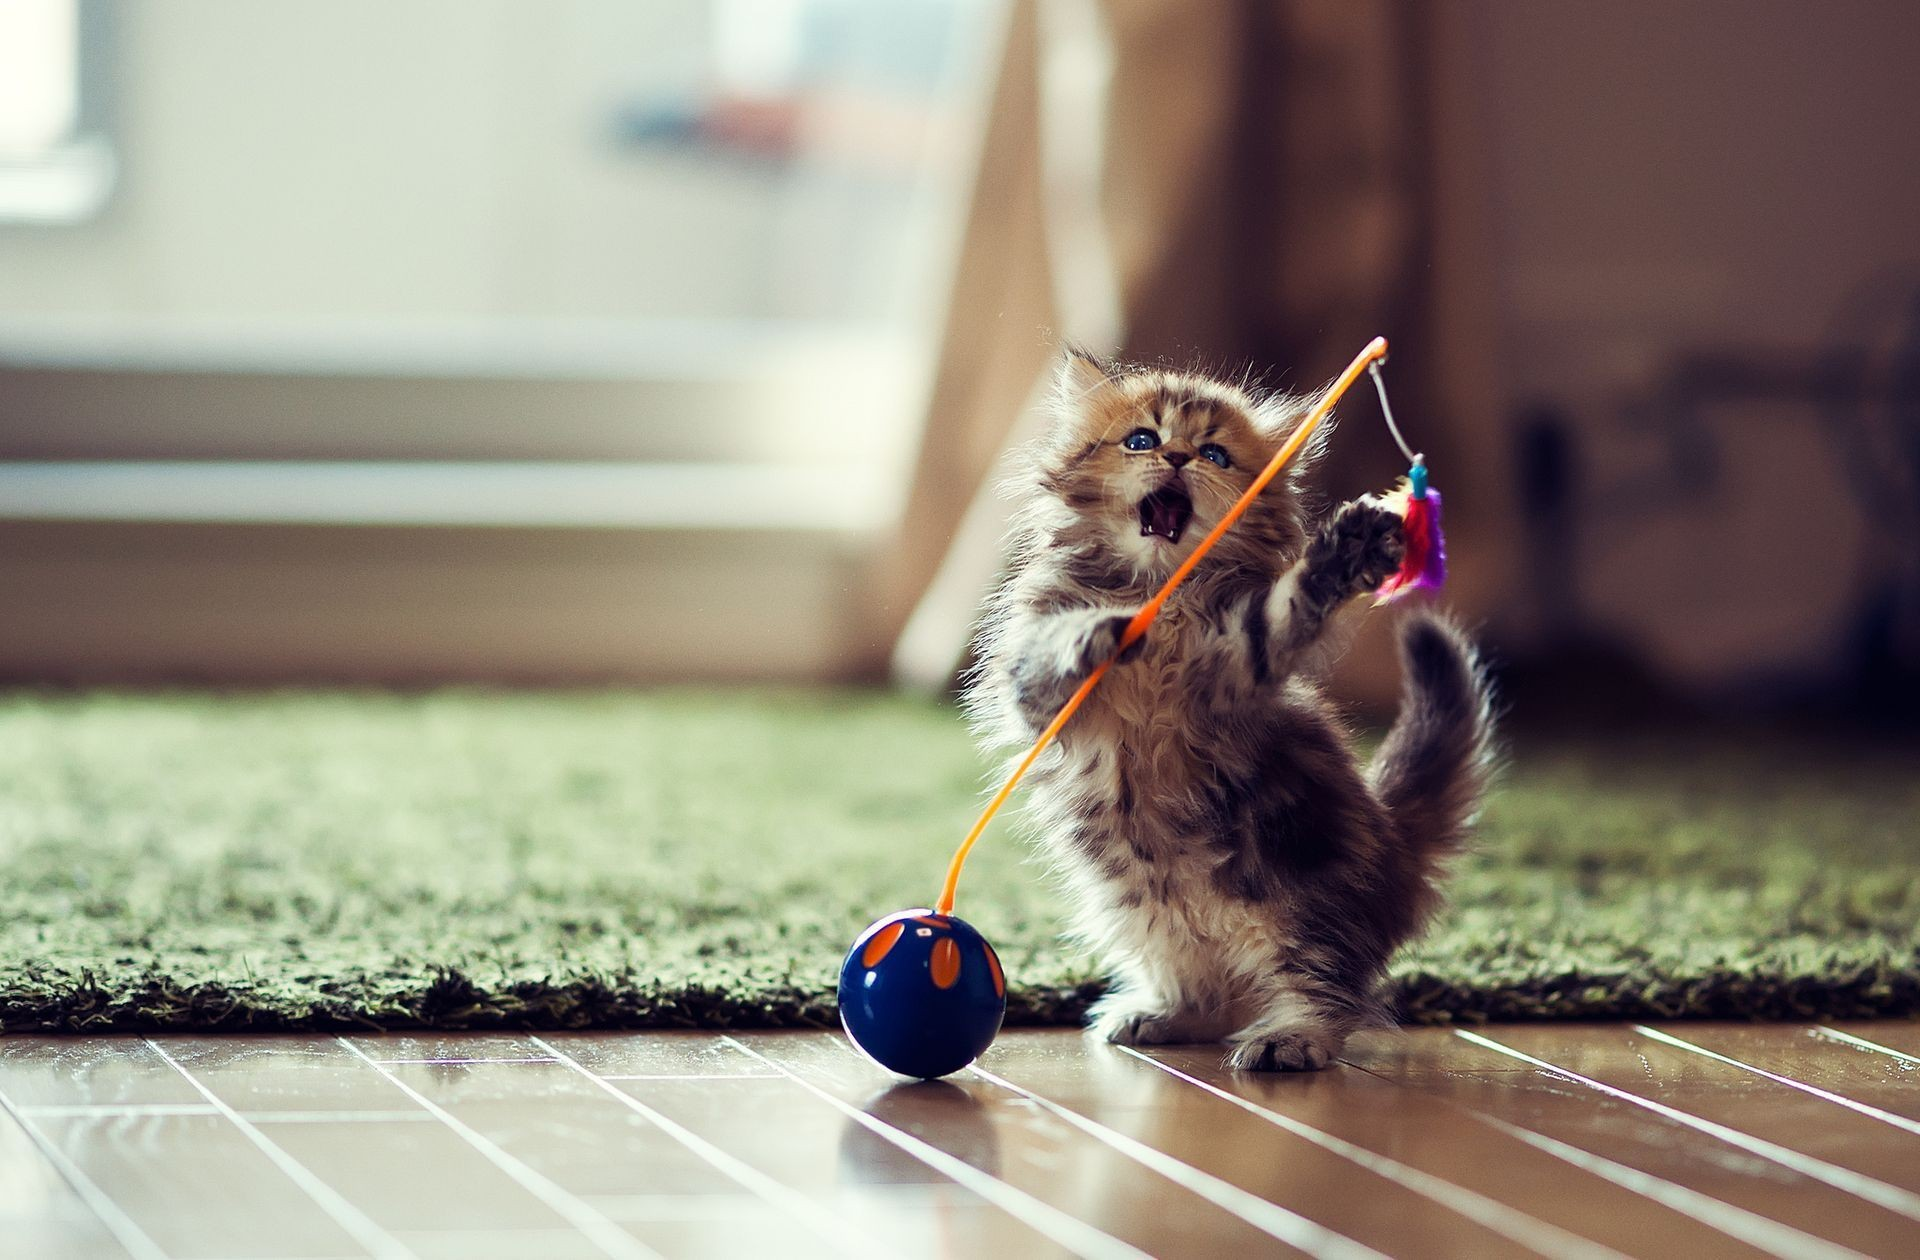 Kitten with Toy